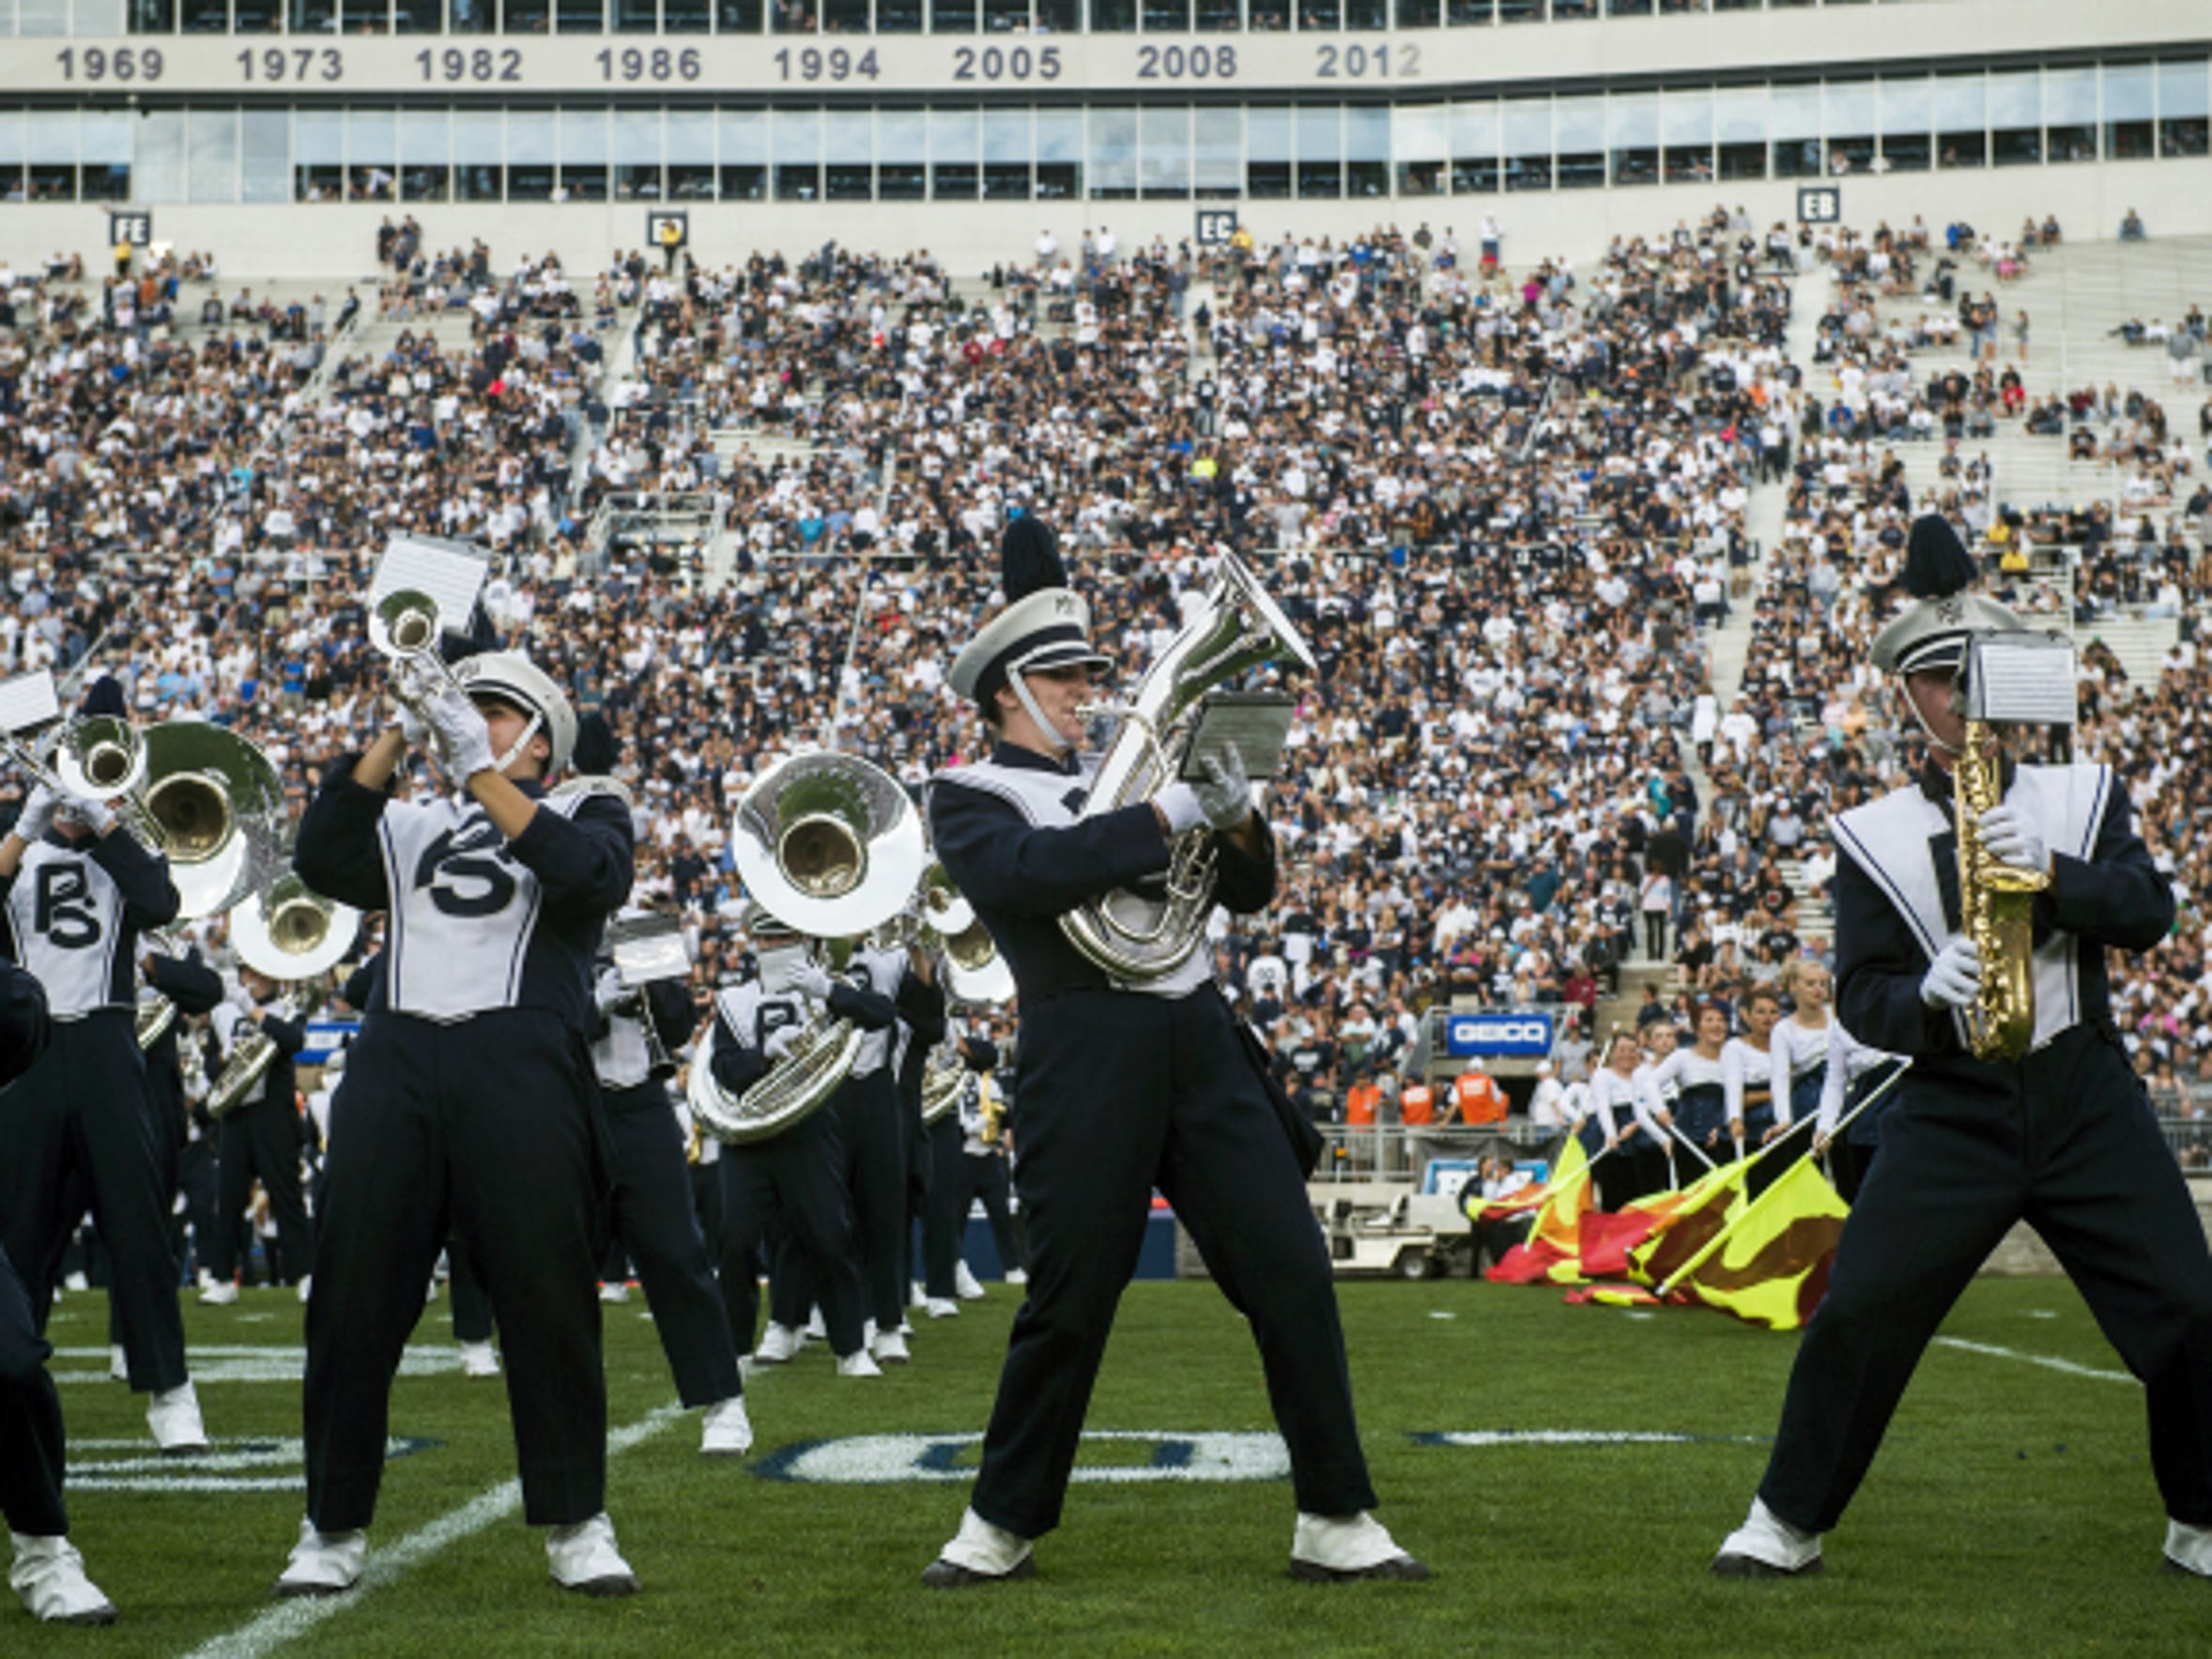 The Penn State Blue Band performs Sept. 26 at Beaver